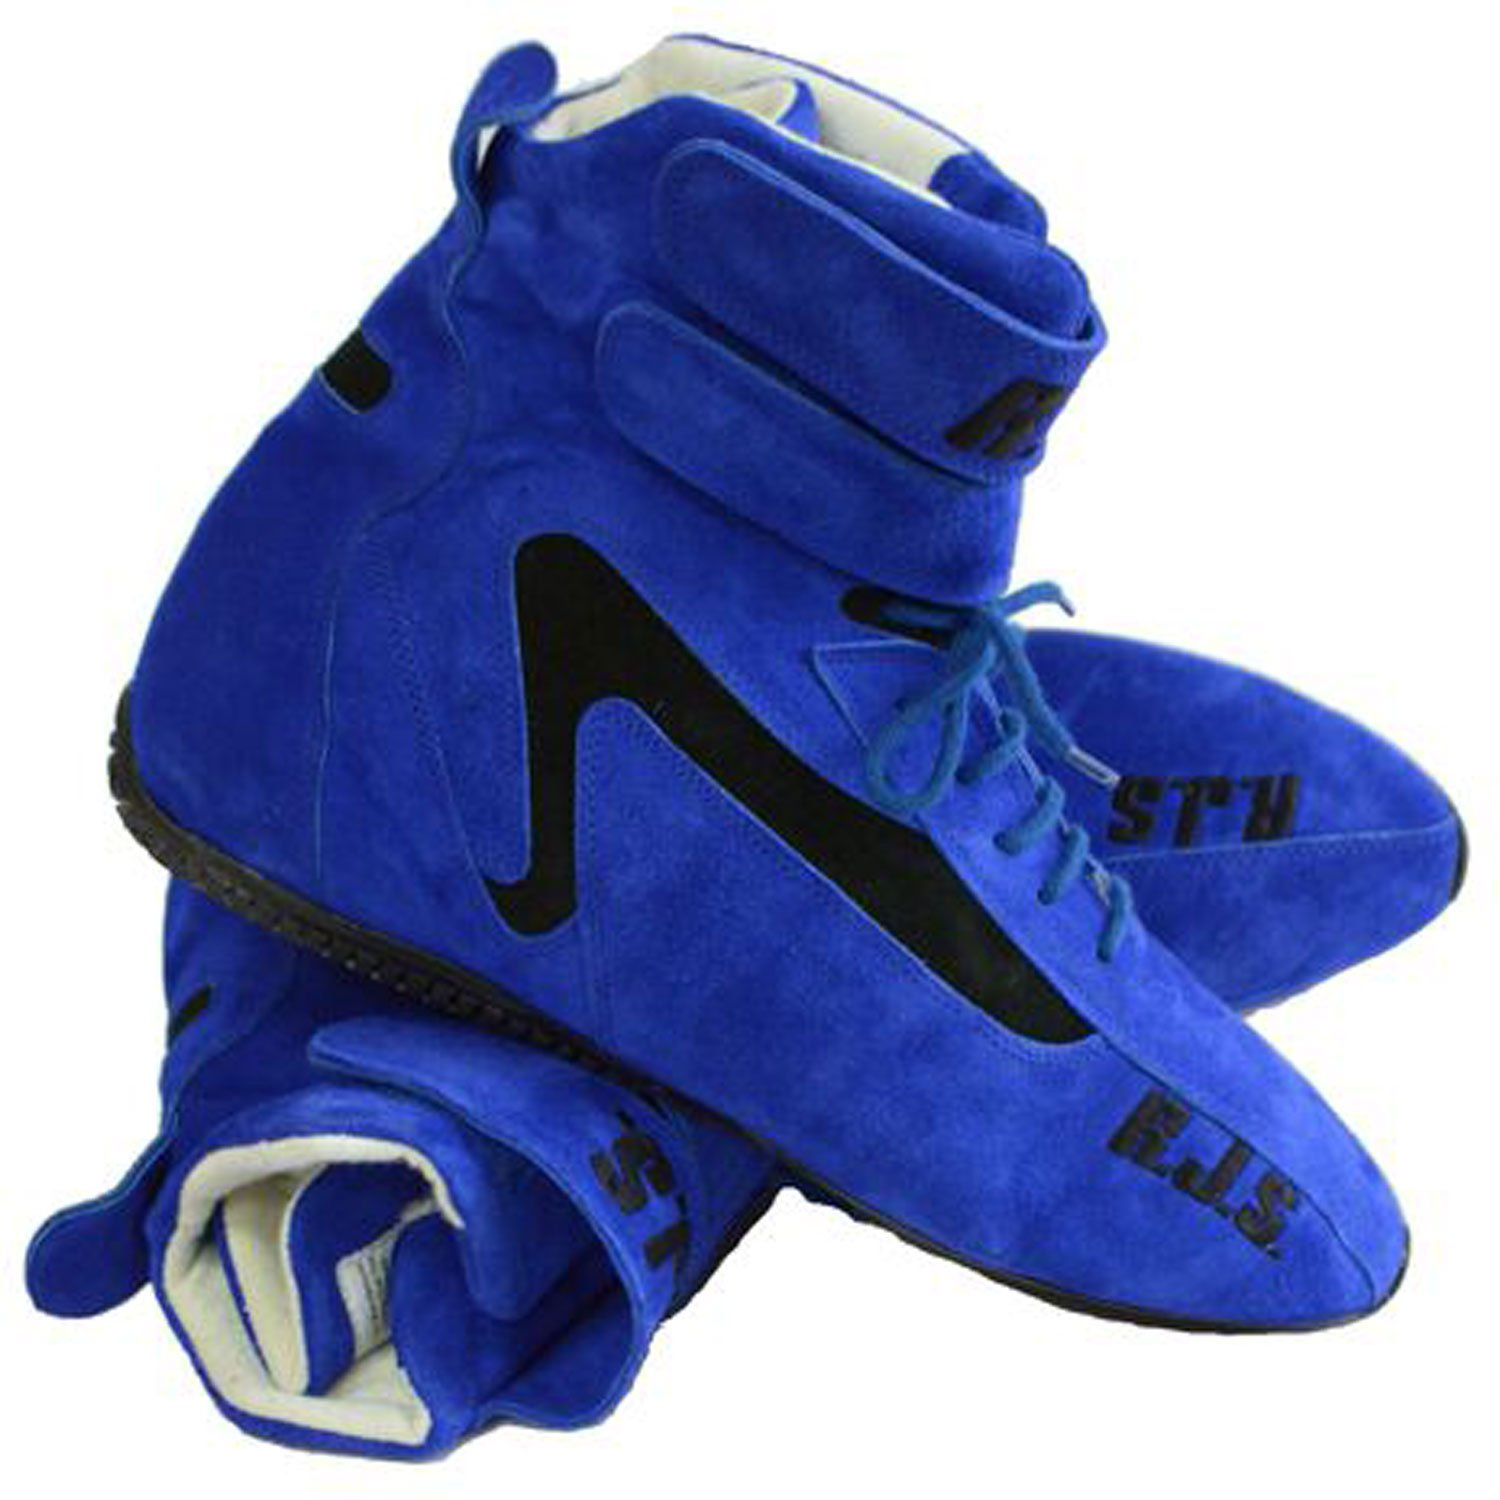 BRUSHED LEATHER /& ARIMAND KEVLAR LINER,GREAT FOR NUMEROUS TYPES OF RACING /& OFF-ROAD APPLICATIONS NEW PAIR OF RJS BLUE HIGH-TOP DRIVING SHOES,SIZE 12,RACING BOOTS,SFI 3.3//5